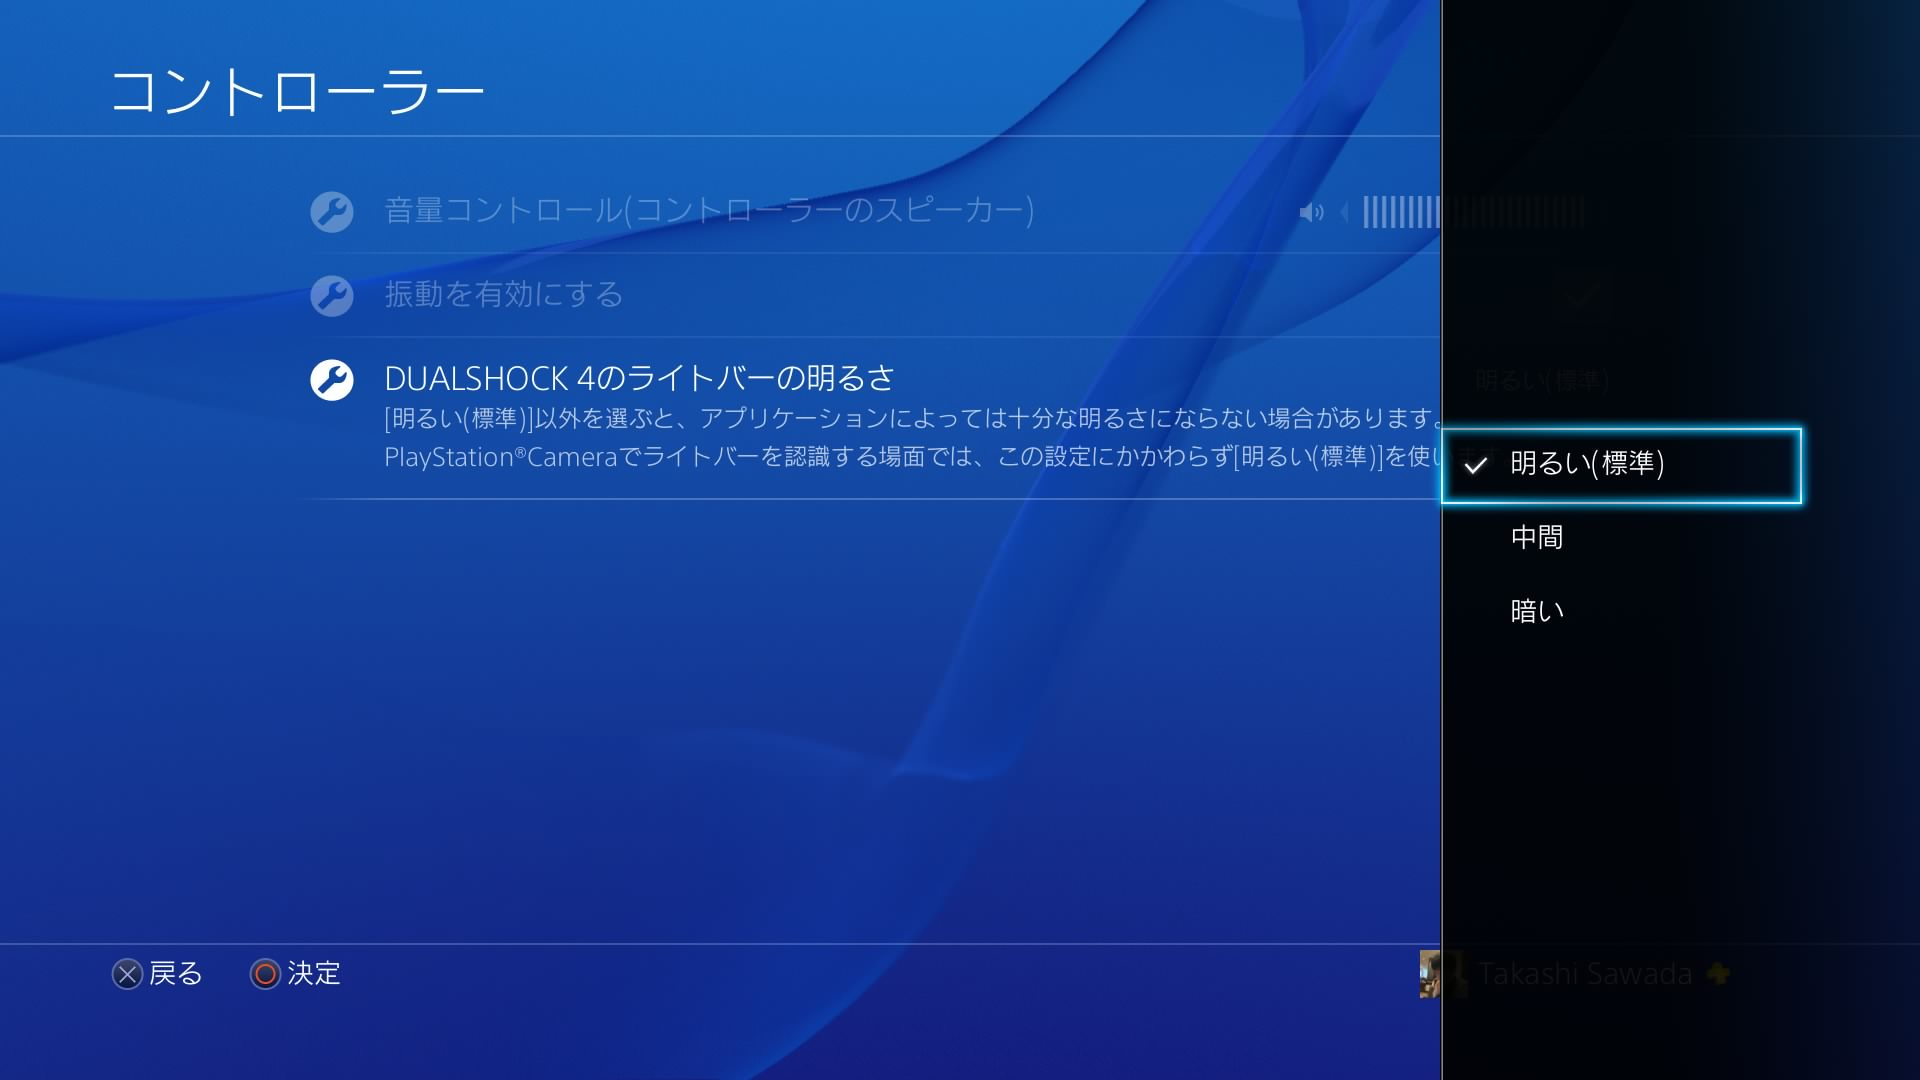 How to adjust to luminous energy of controller for playstation 4 05